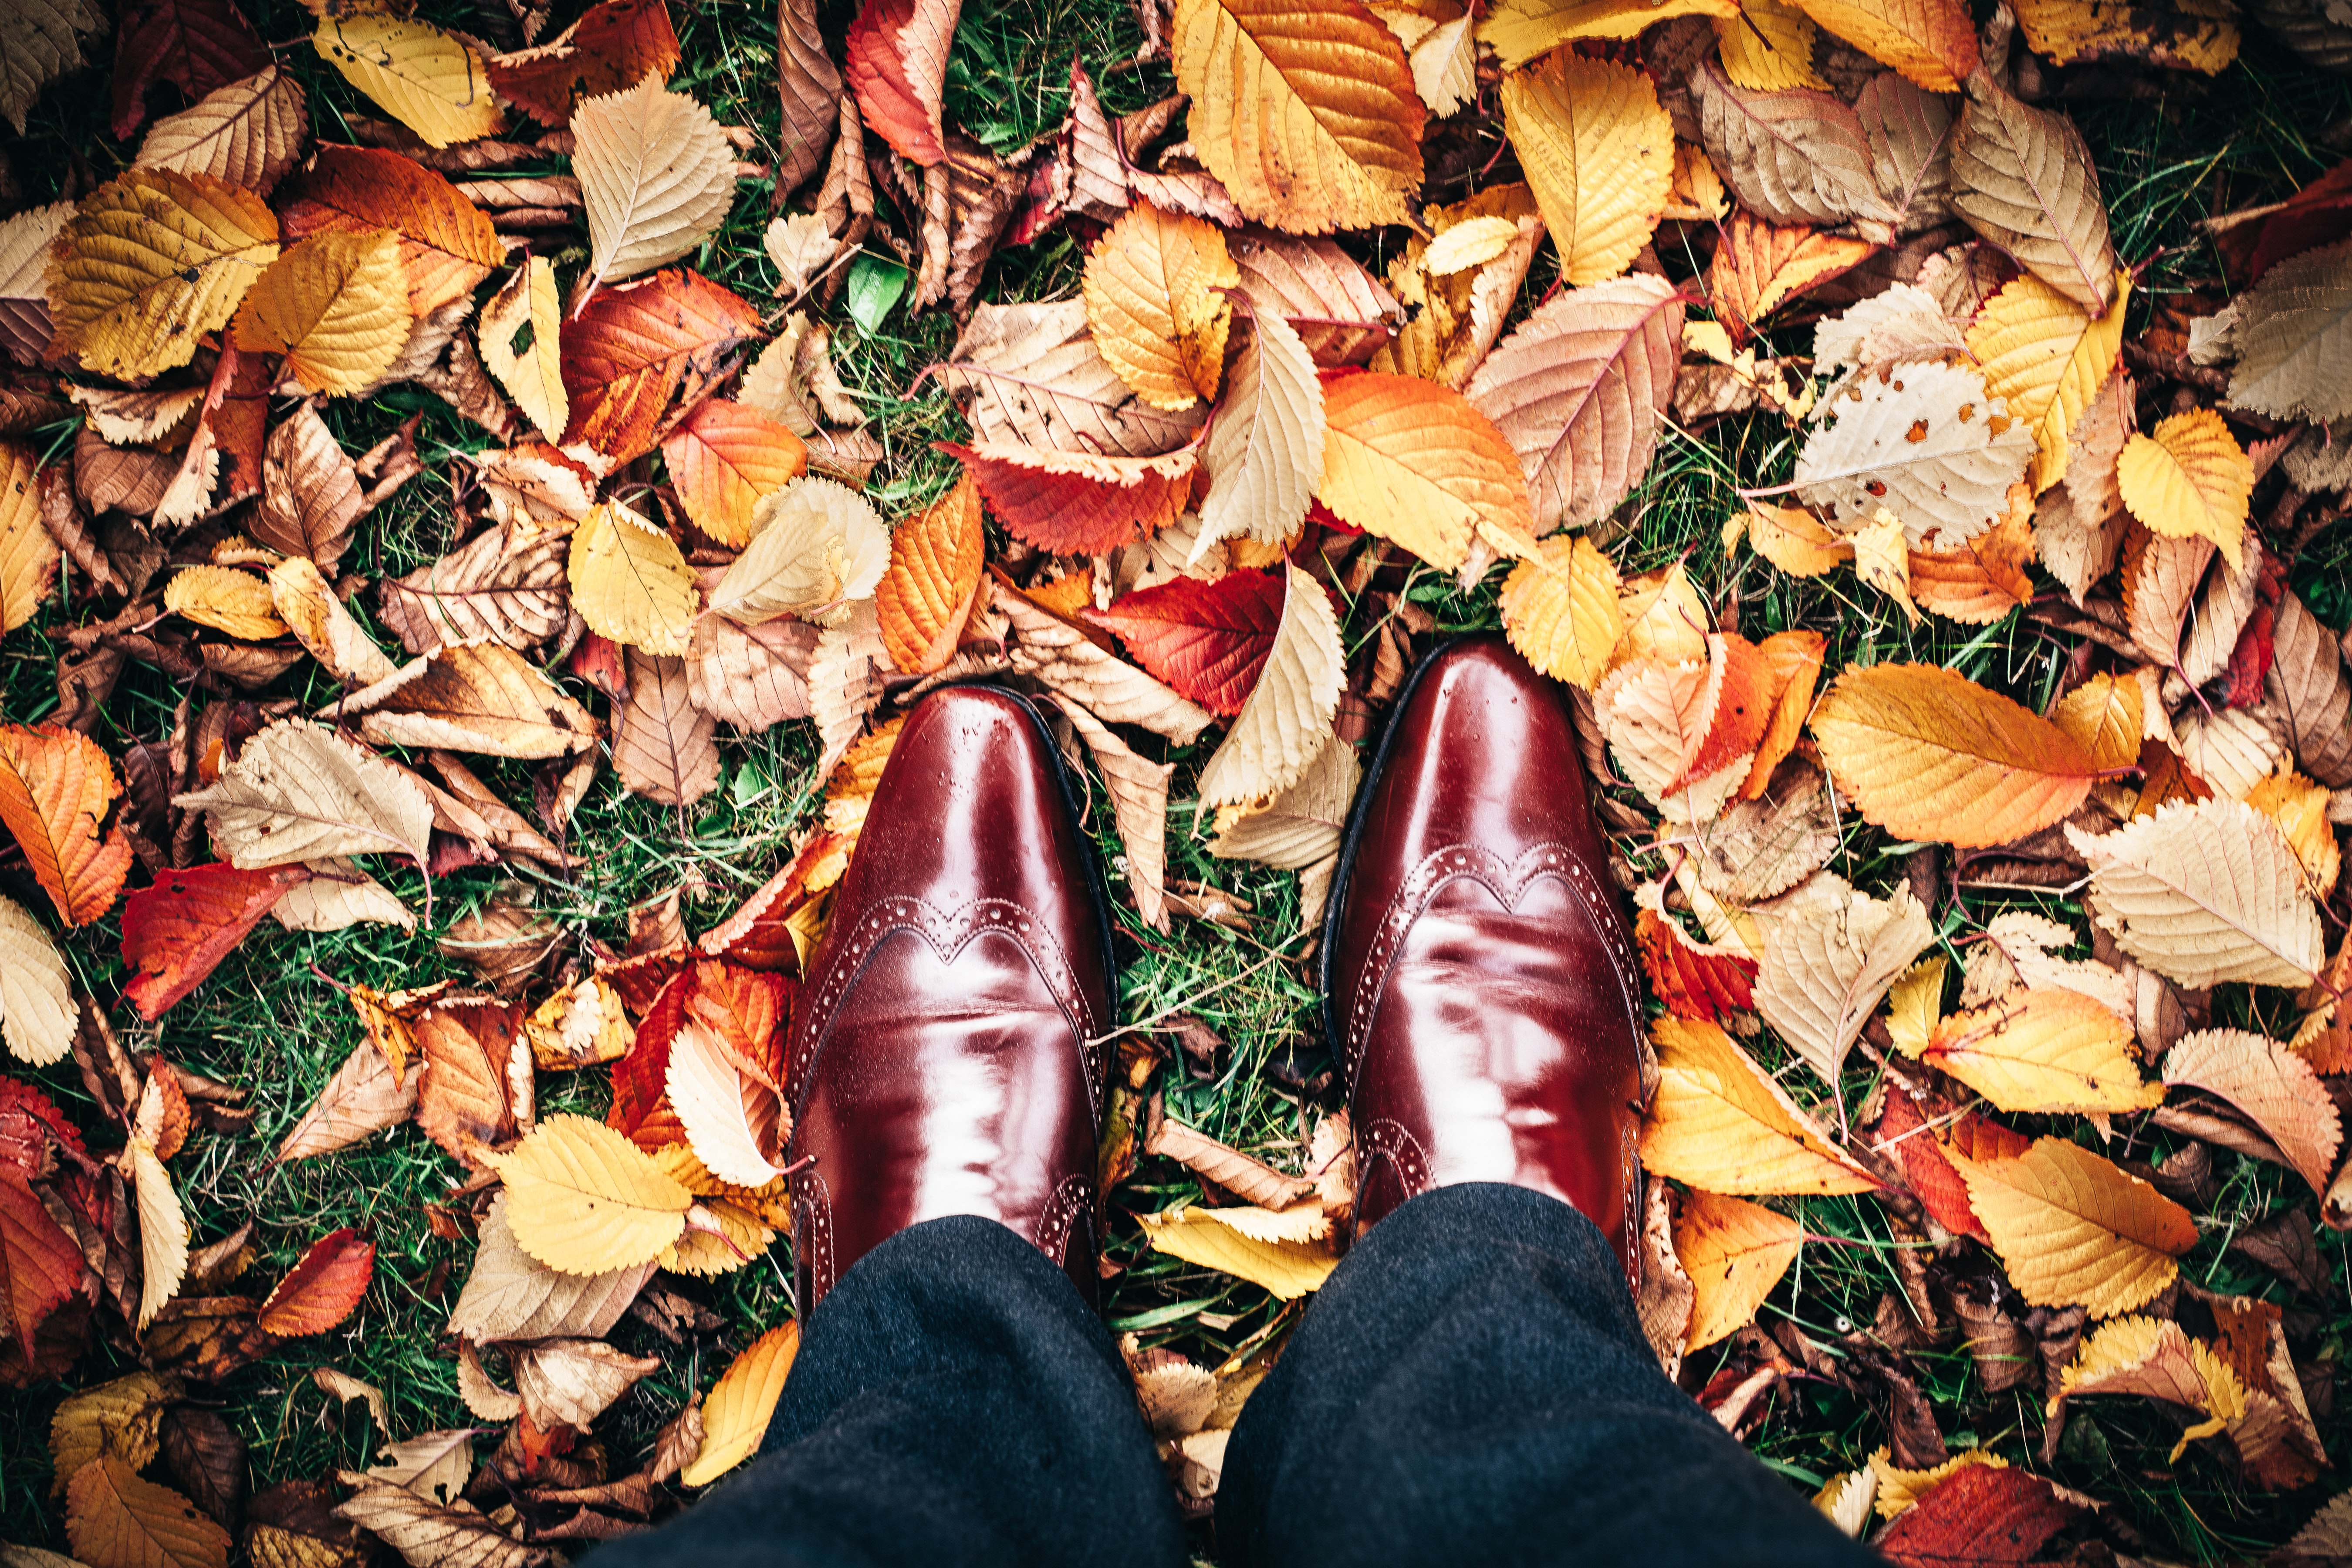 An overhead shot of a person's shiny brown leather shoes on a carpet of autumn leaves